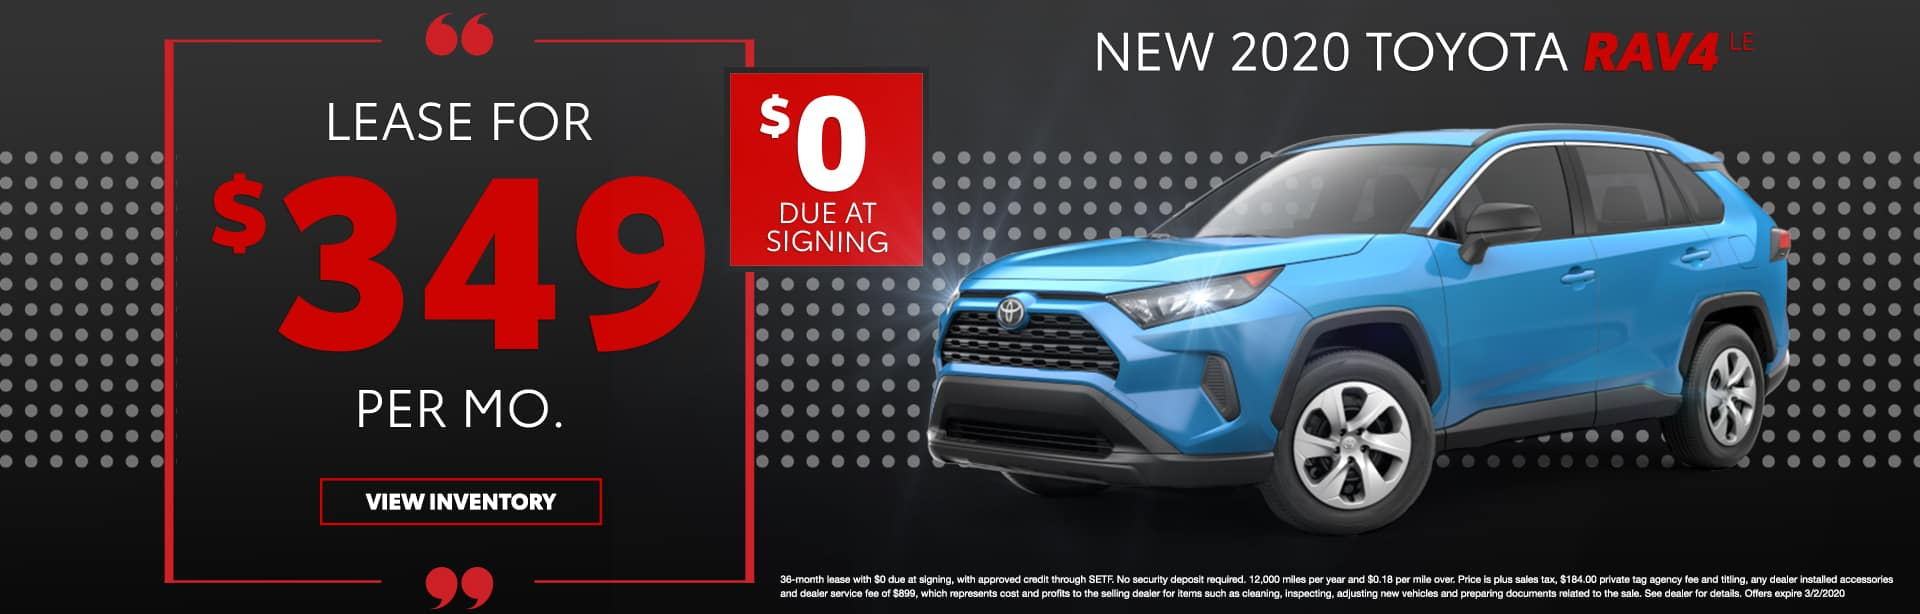 New 2020 Toyota RAV4 LE   Lease For $349 Per Mo   $0 Due At Signing